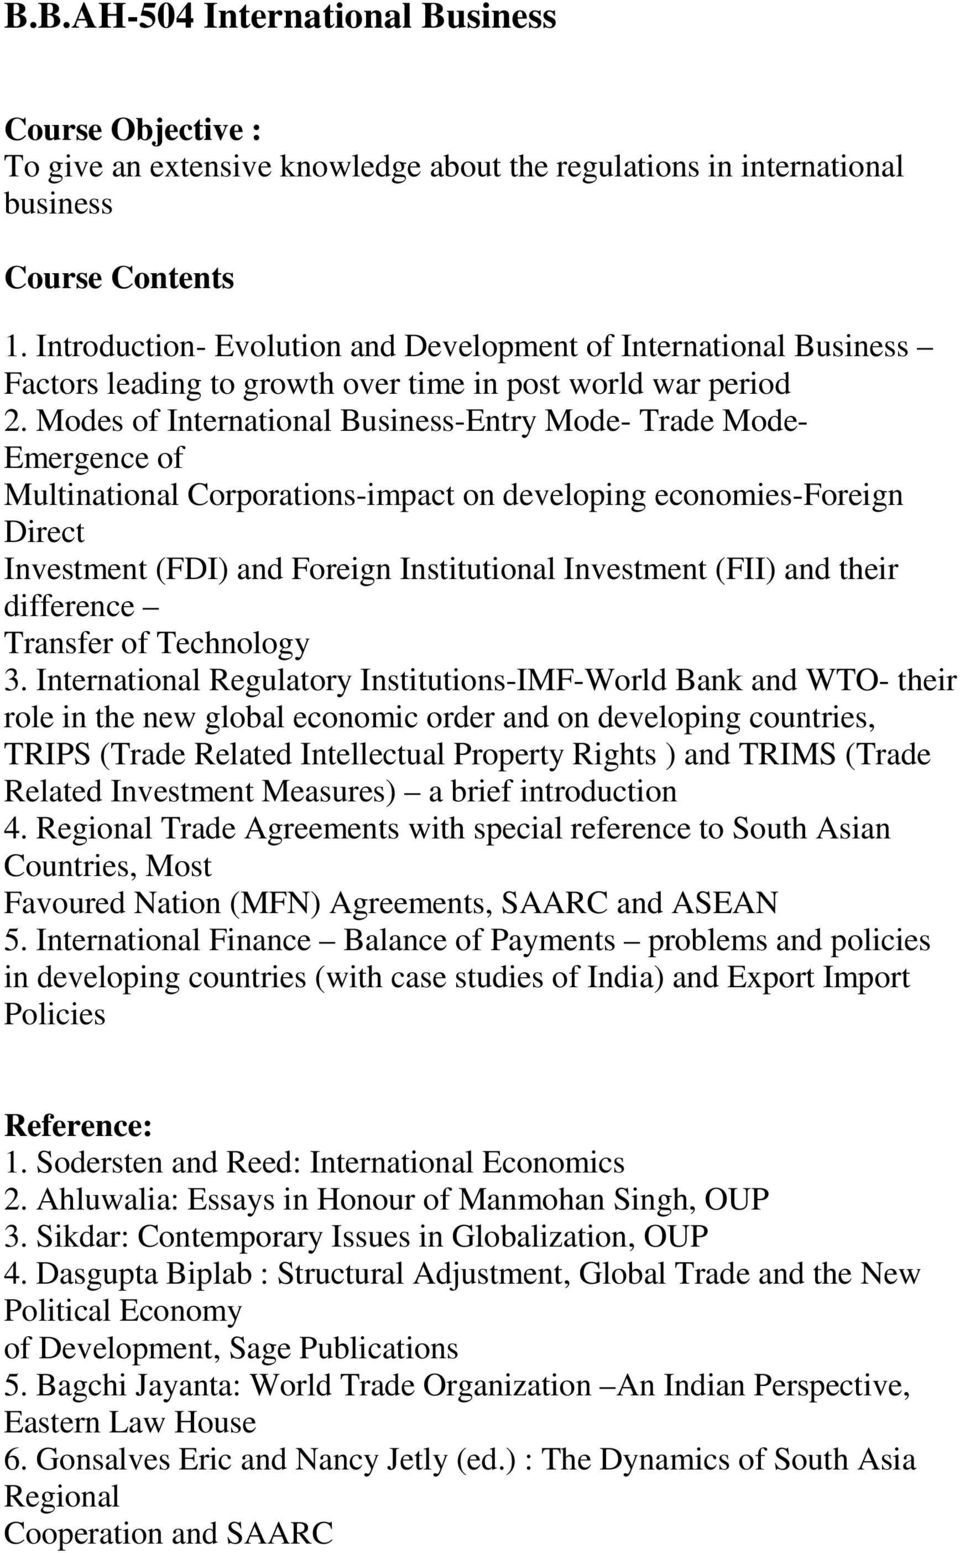 Modes of International Business-Entry Mode- Trade Mode- Emergence of Multinational Corporations-impact on developing economies-foreign Direct Investment (FDI) and Foreign Institutional Investment